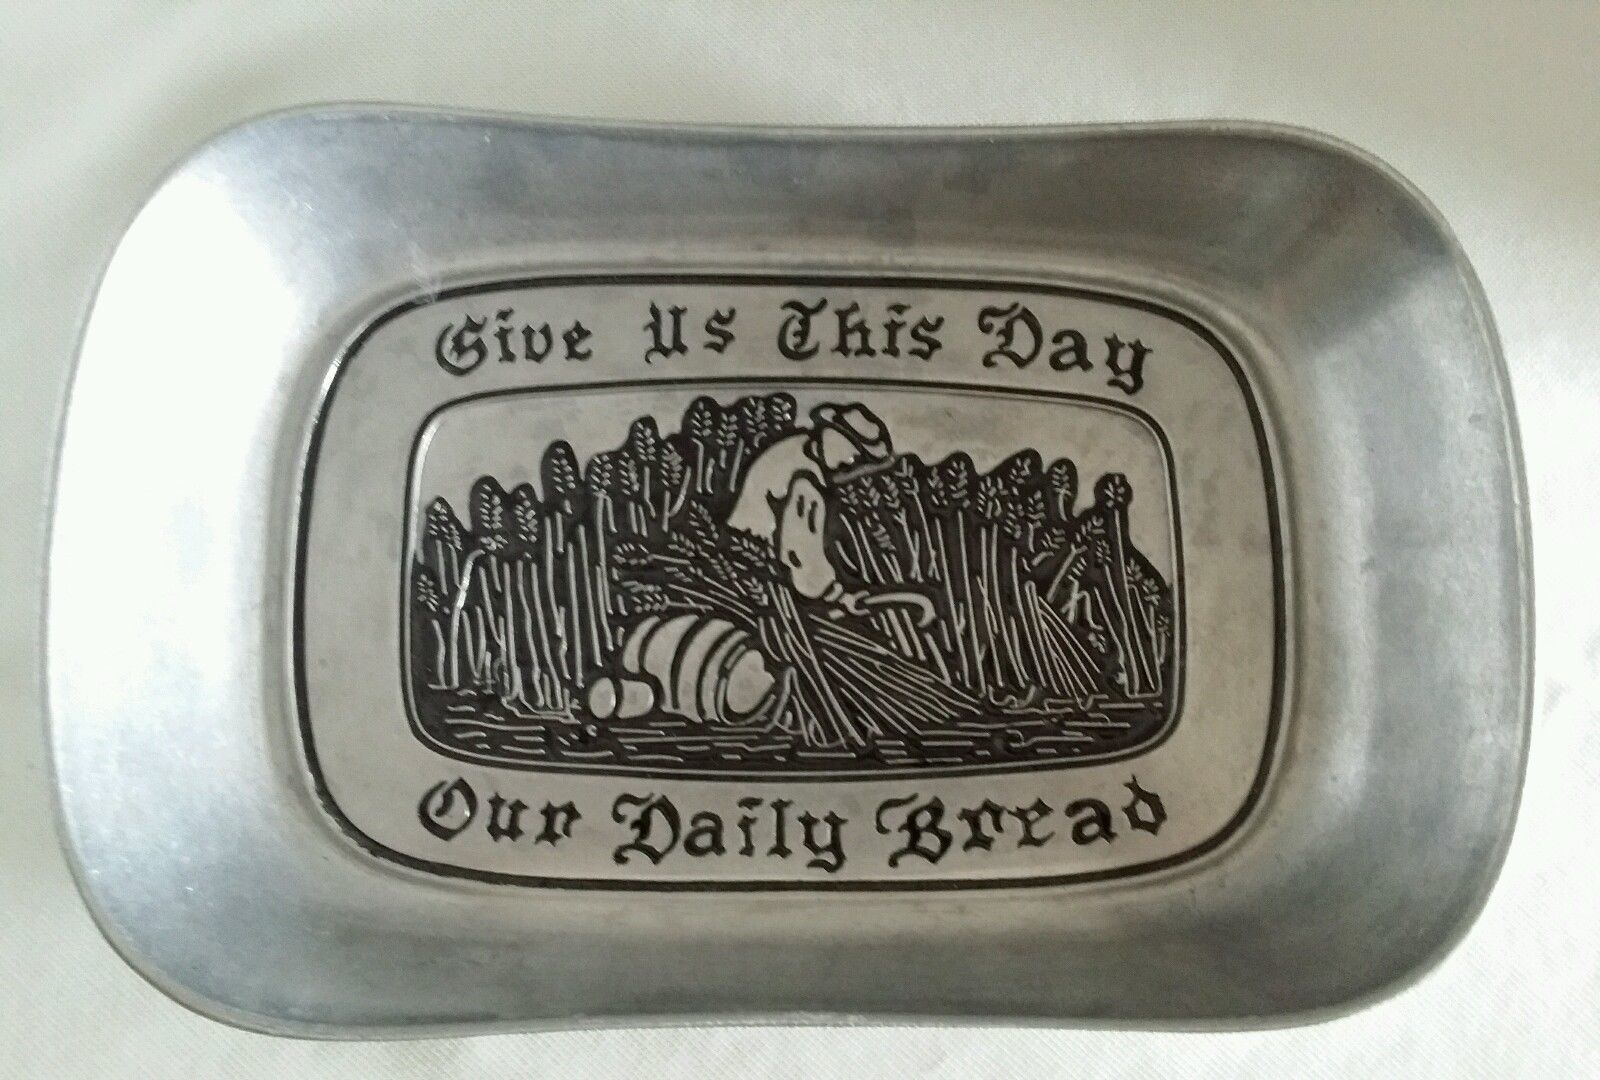 Primary image for Wilton Armetale Serveware Give Us This Day Our Daily Bread  Lg Bread Tray 601009